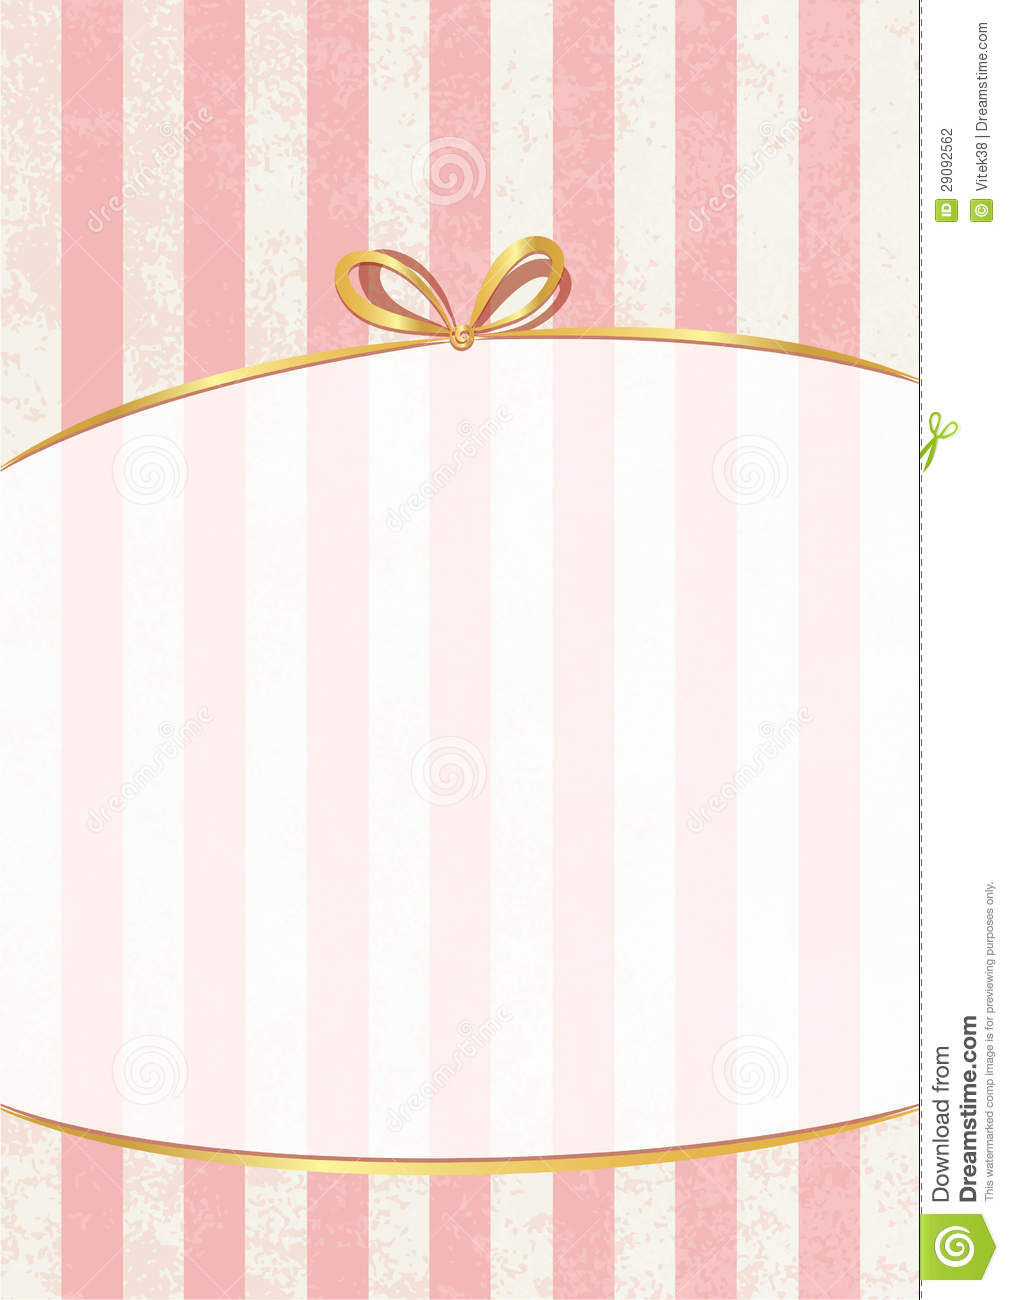 Wallpaper Cupcake Cute Vector Sweet Stripped Background White And Pink Cute